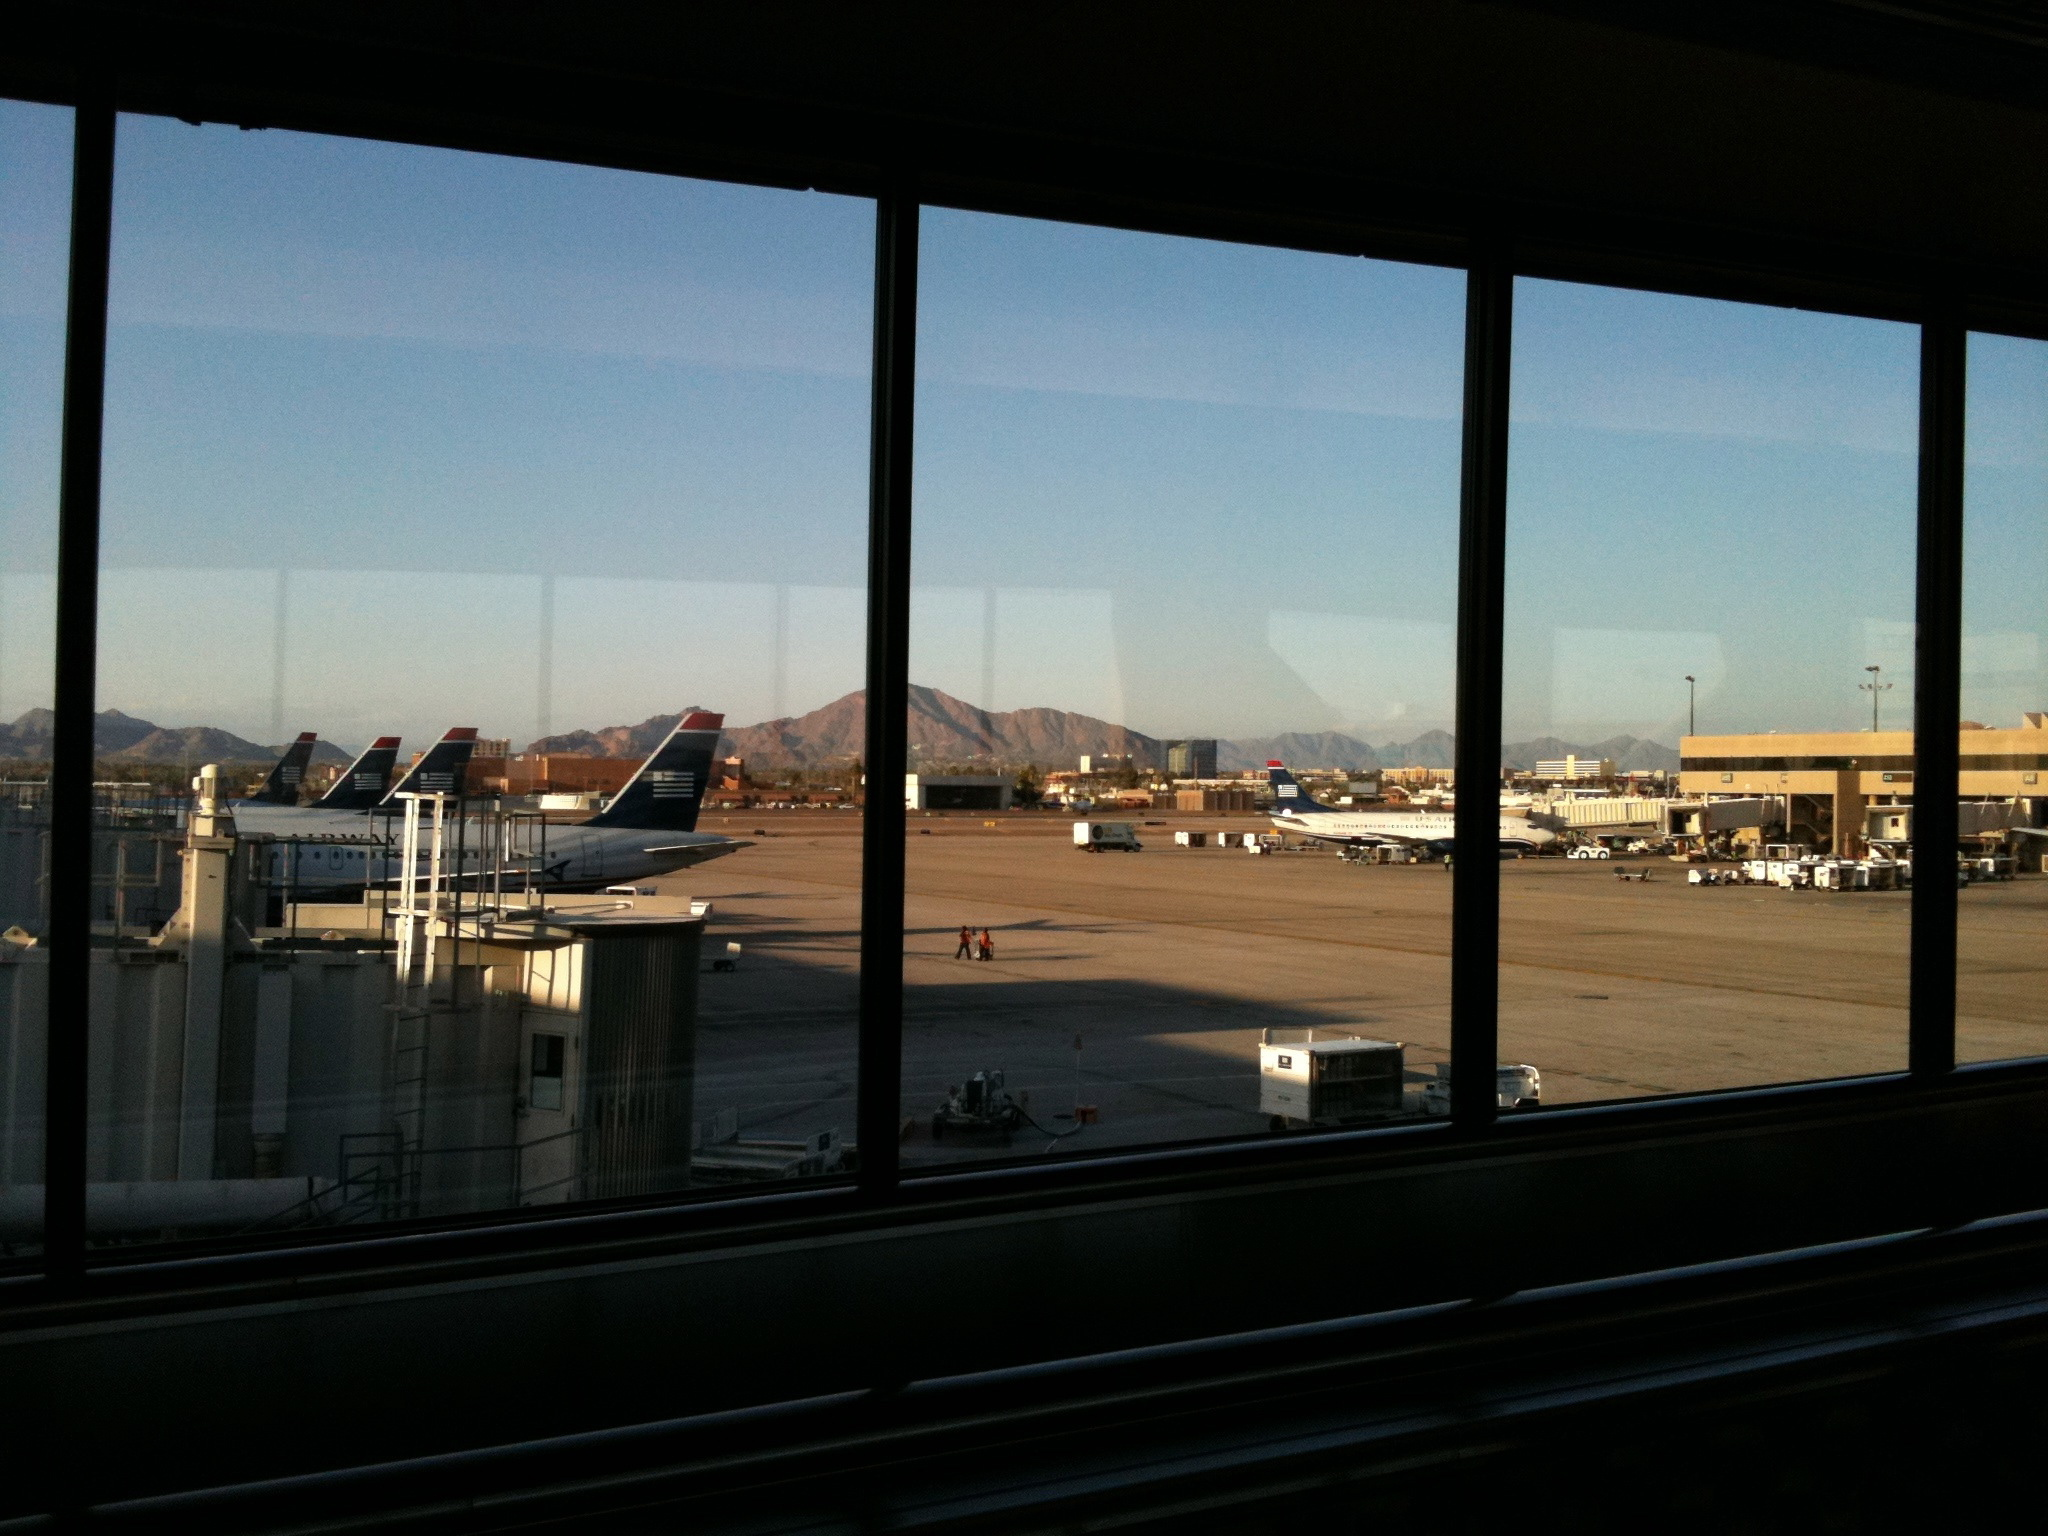 Healthy Airport Eating Continued in Arizona…